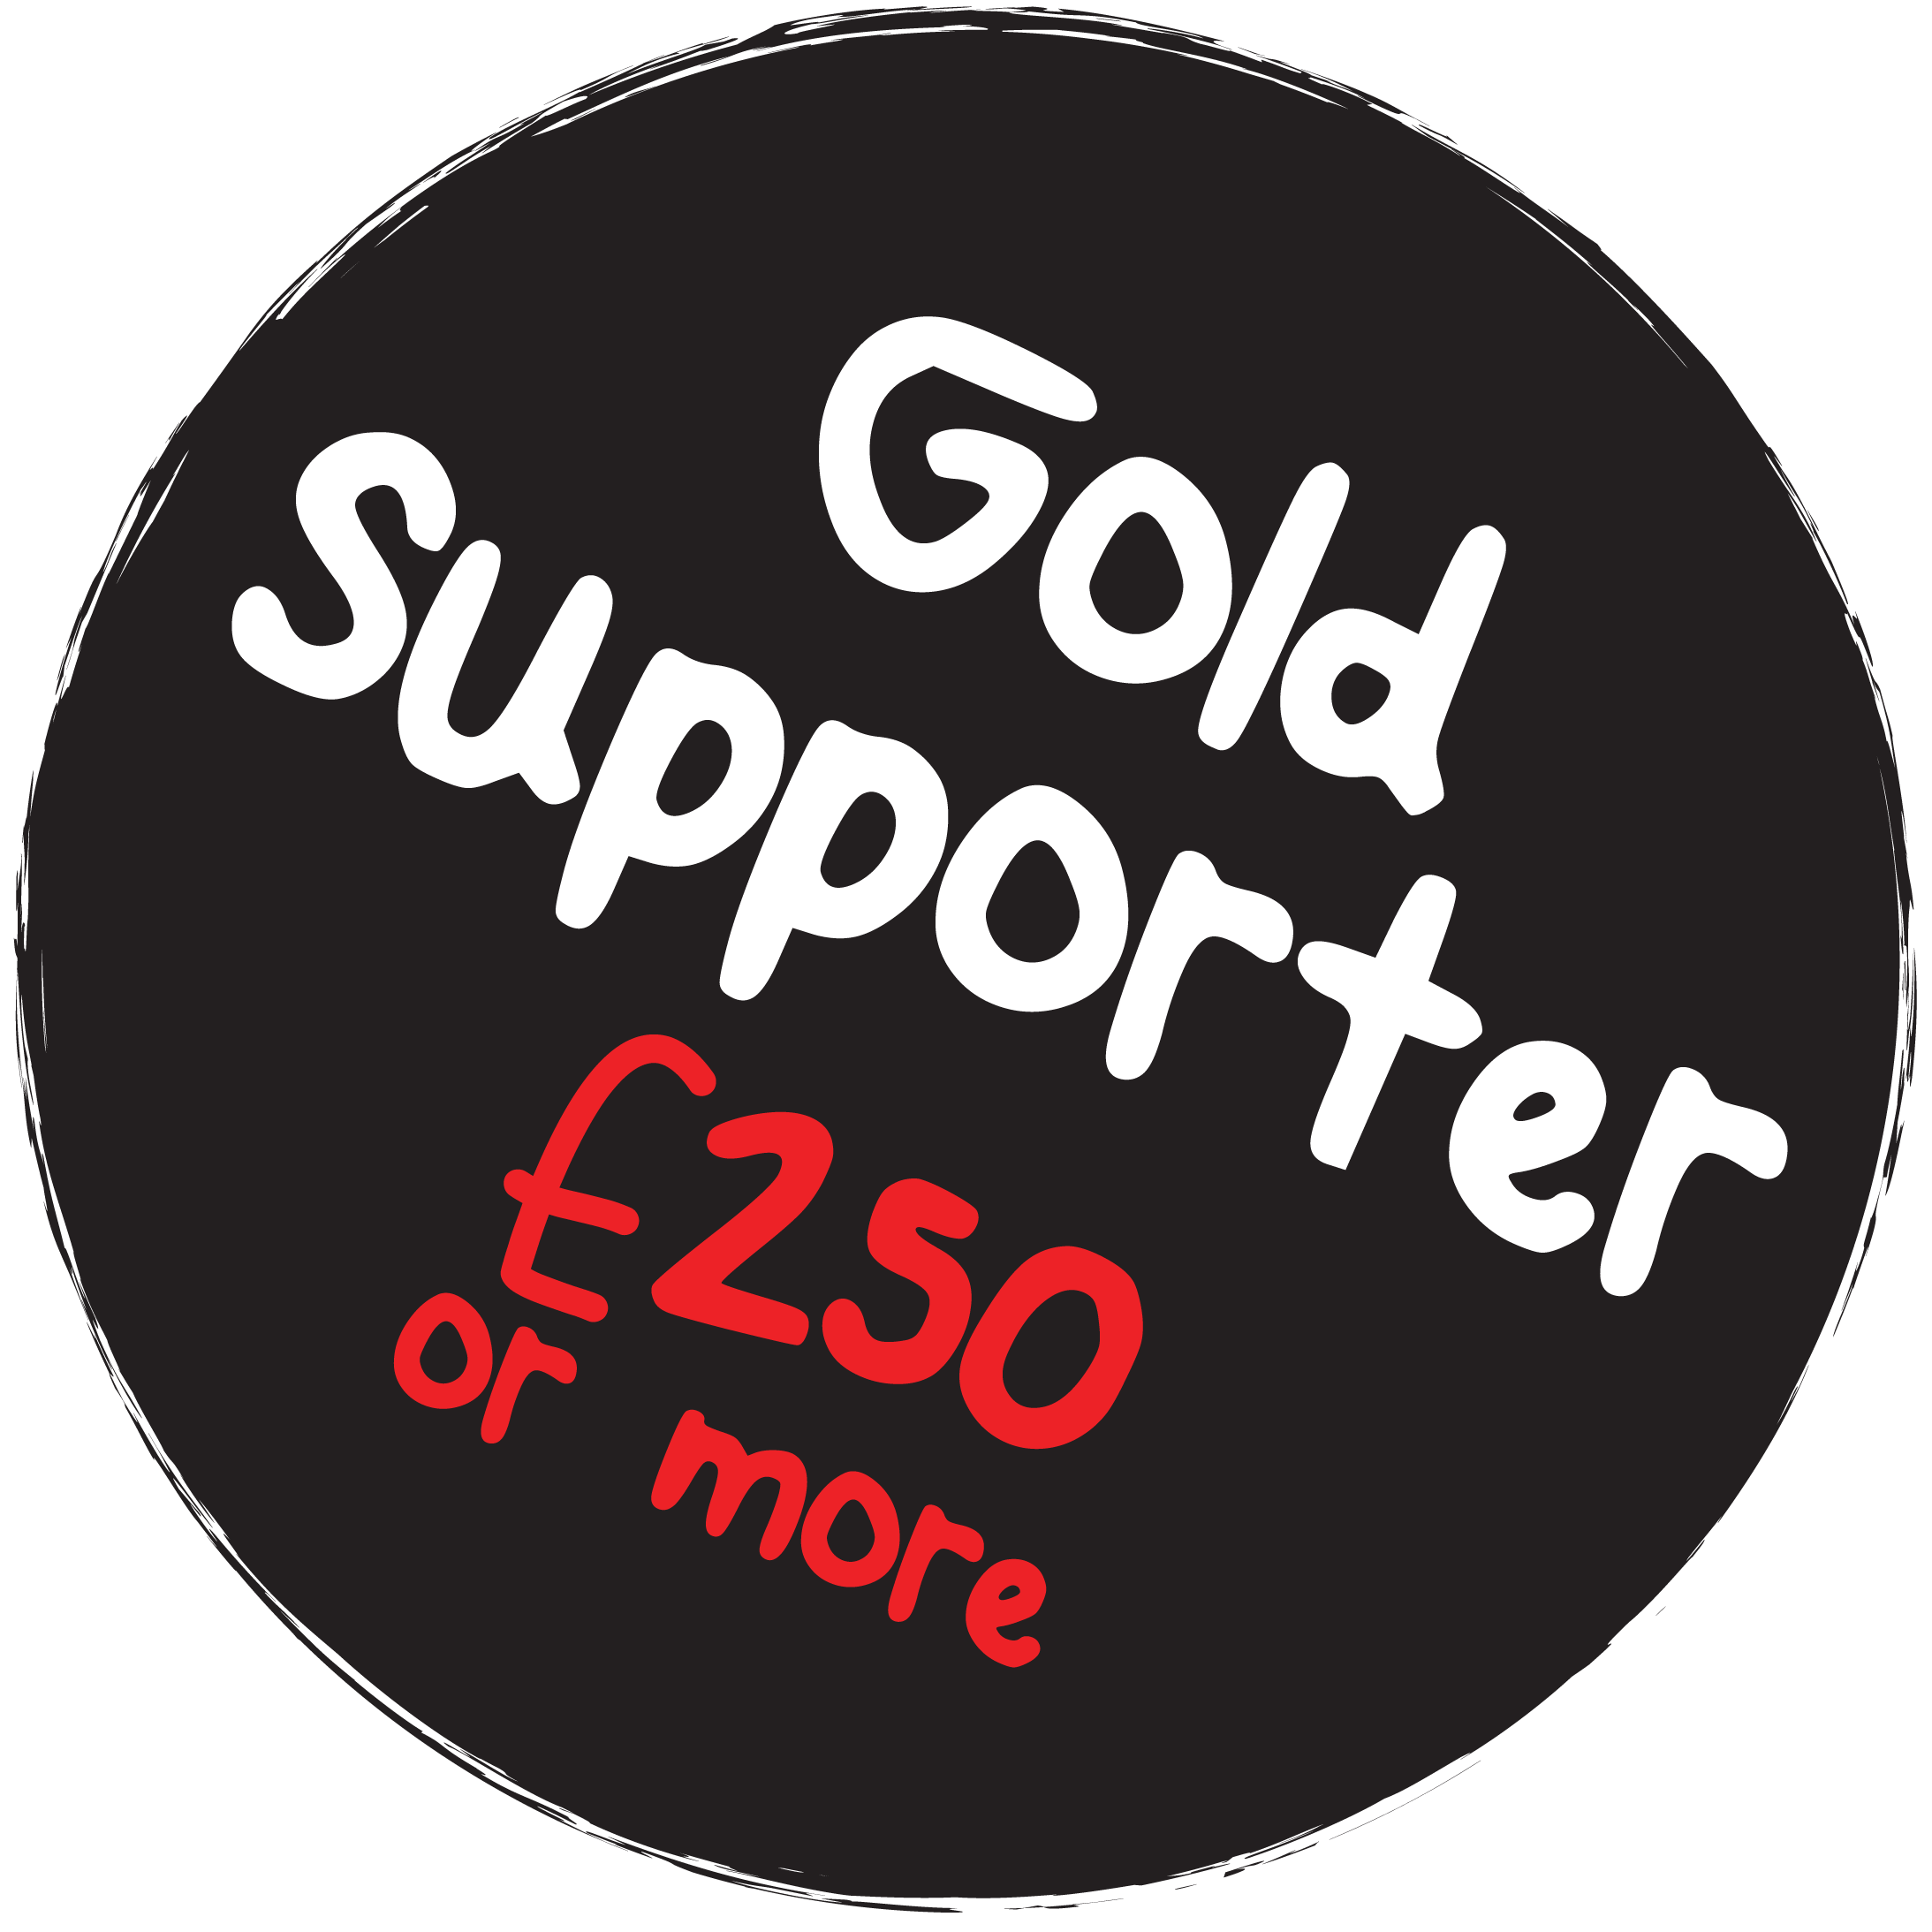 Gold supporter